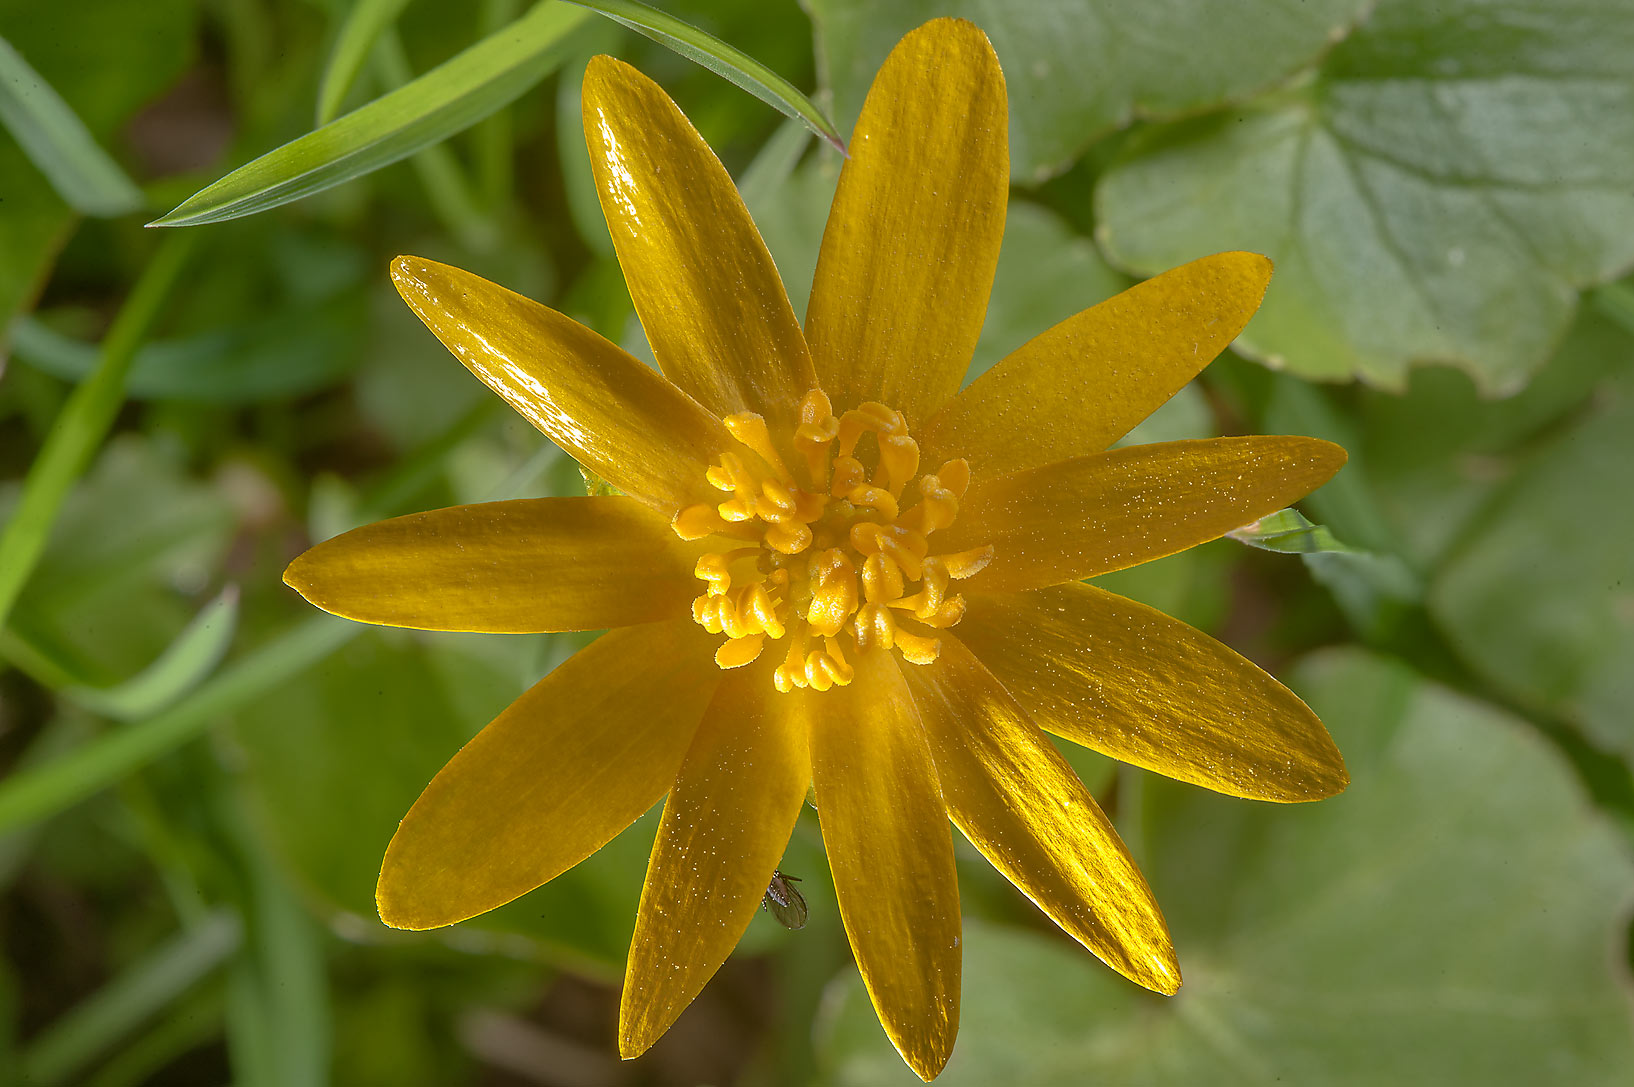 Yellow flower of lesser celandine (Ficaria verna...a suburb of St.Petersburg, Russia